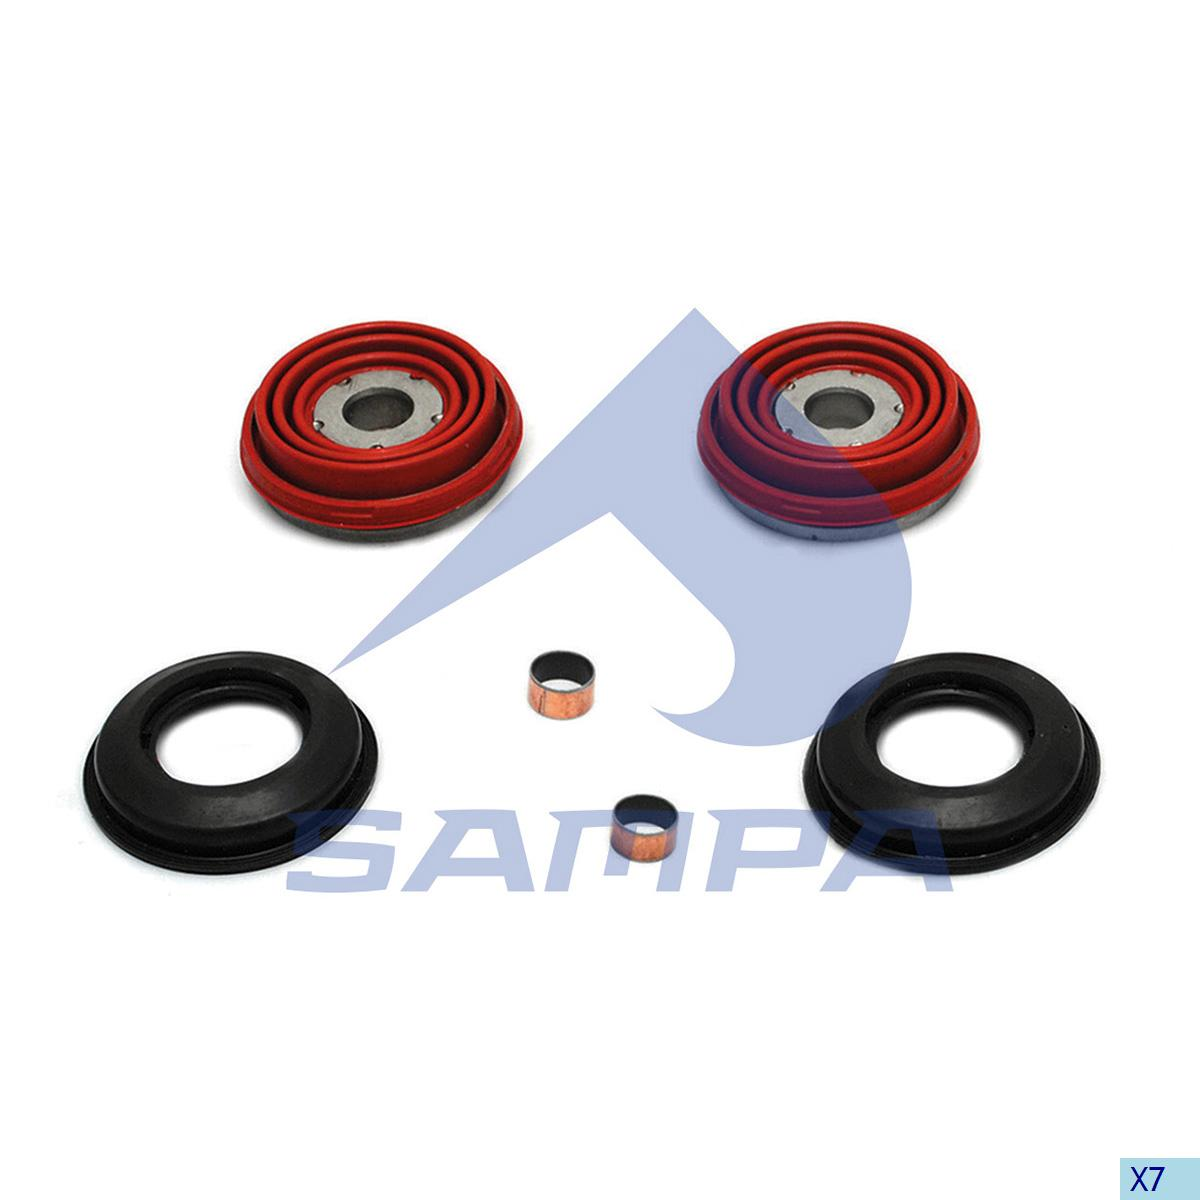 Repair Kit, Brake Caliper, Scania, Brake